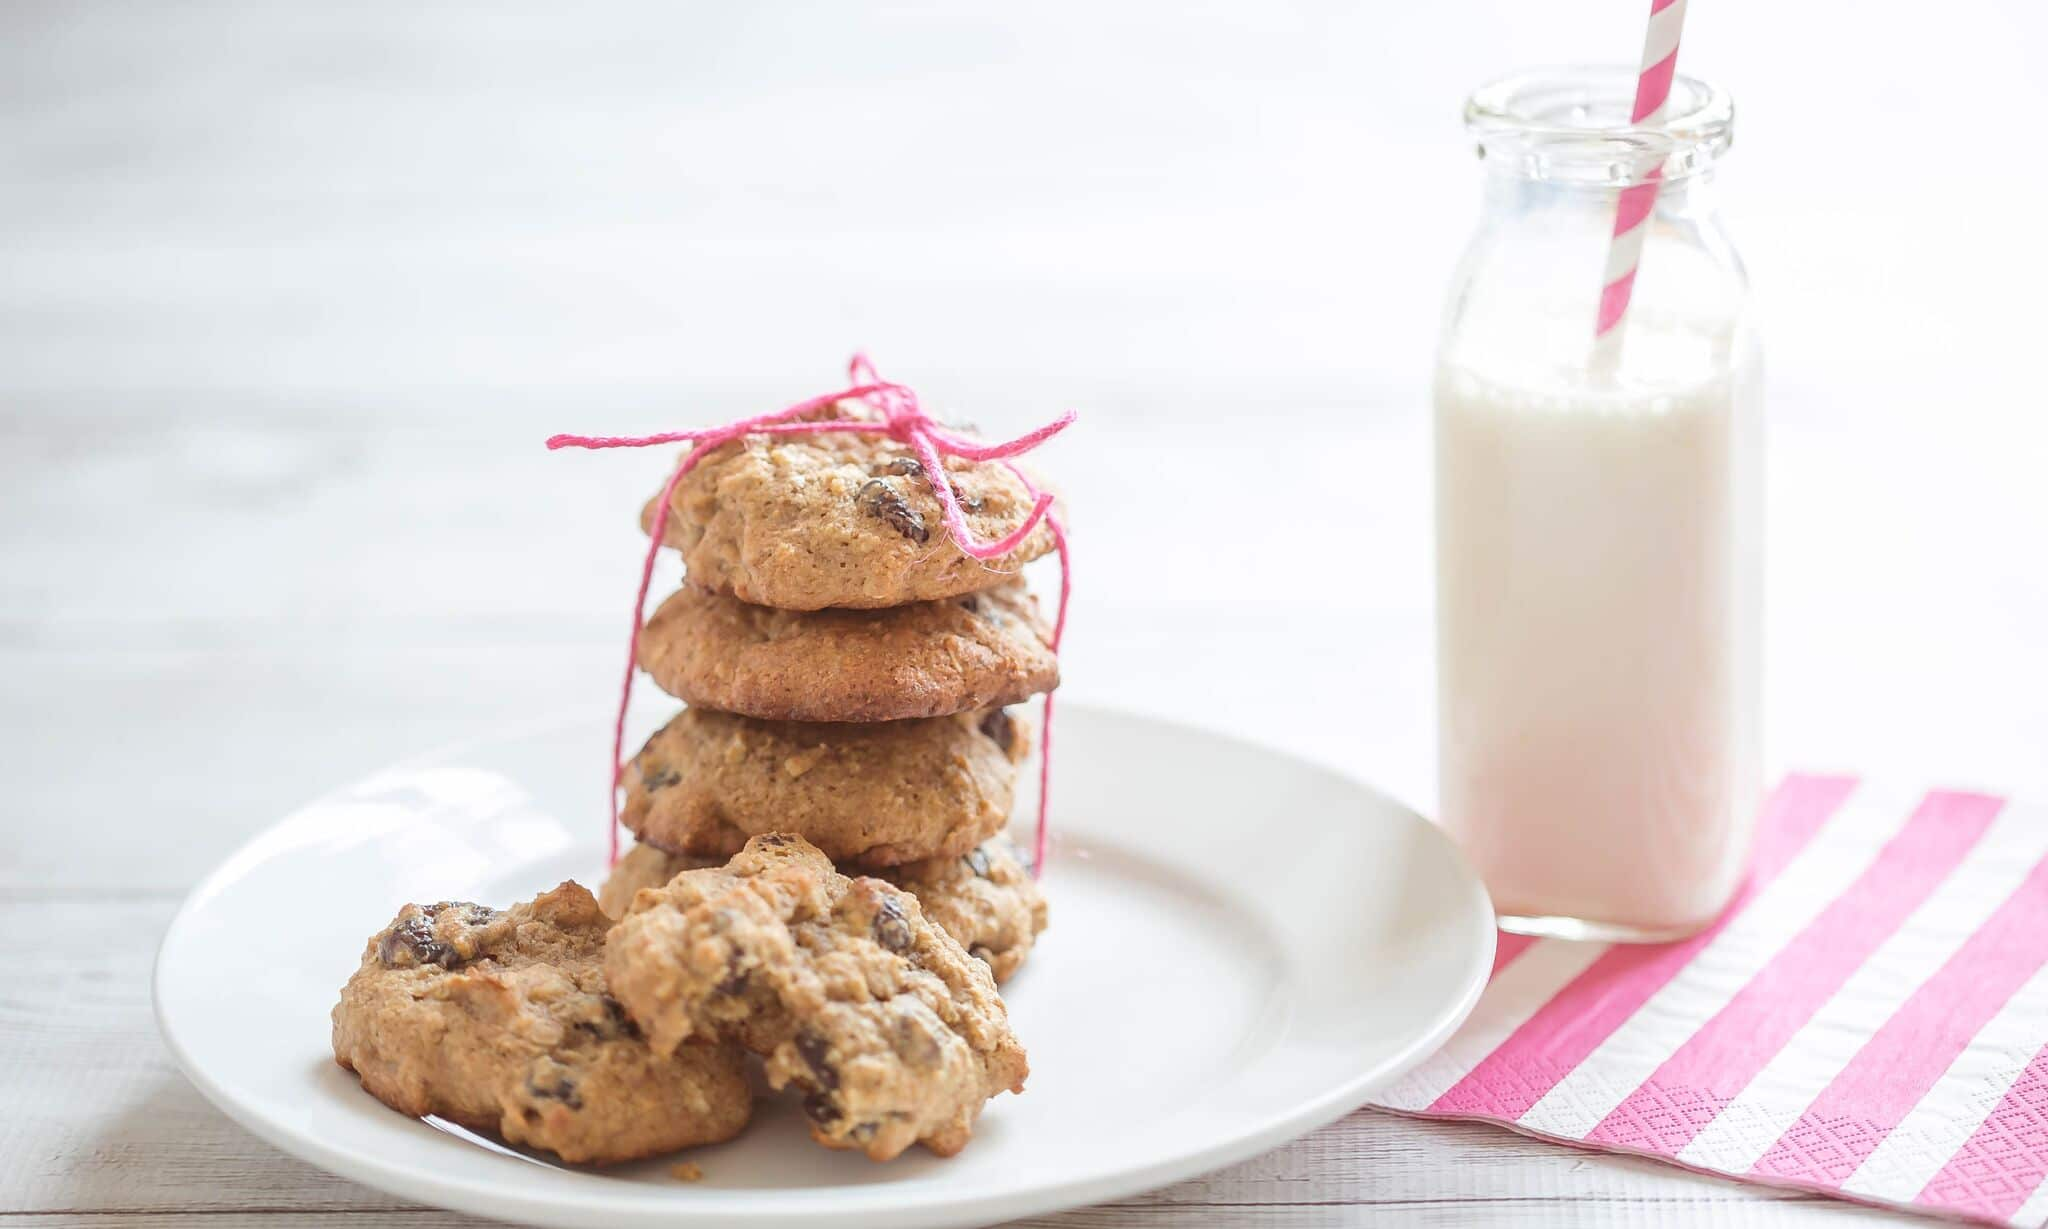 Serve cookies on plate with a glass of milk.